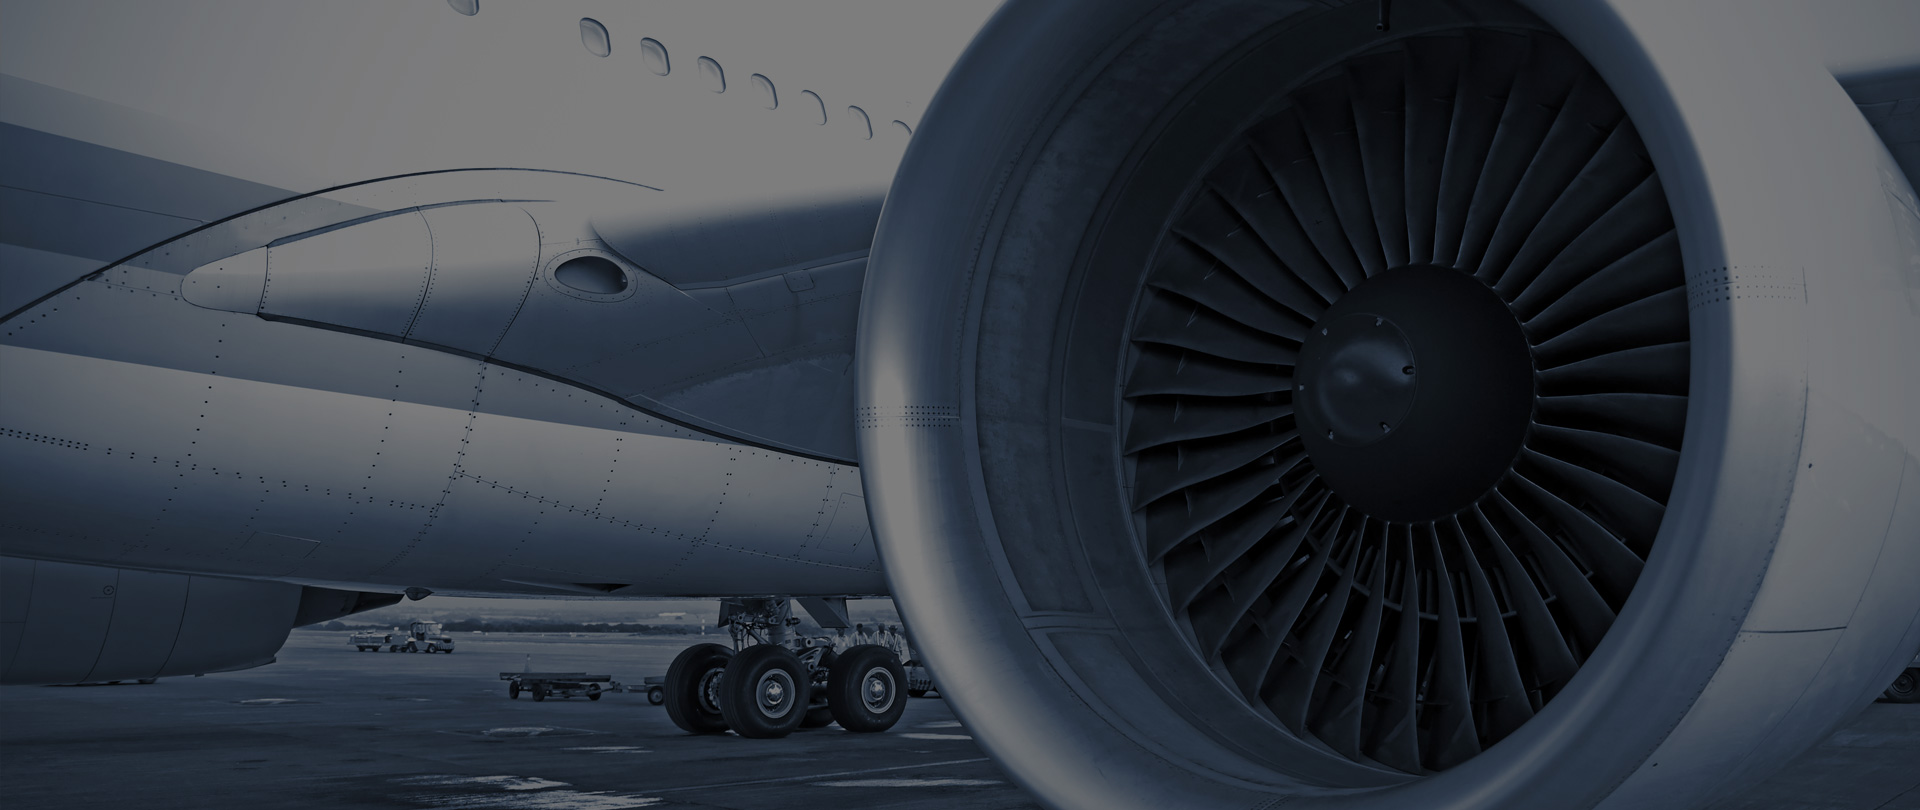 AS9100 and ISO 9001